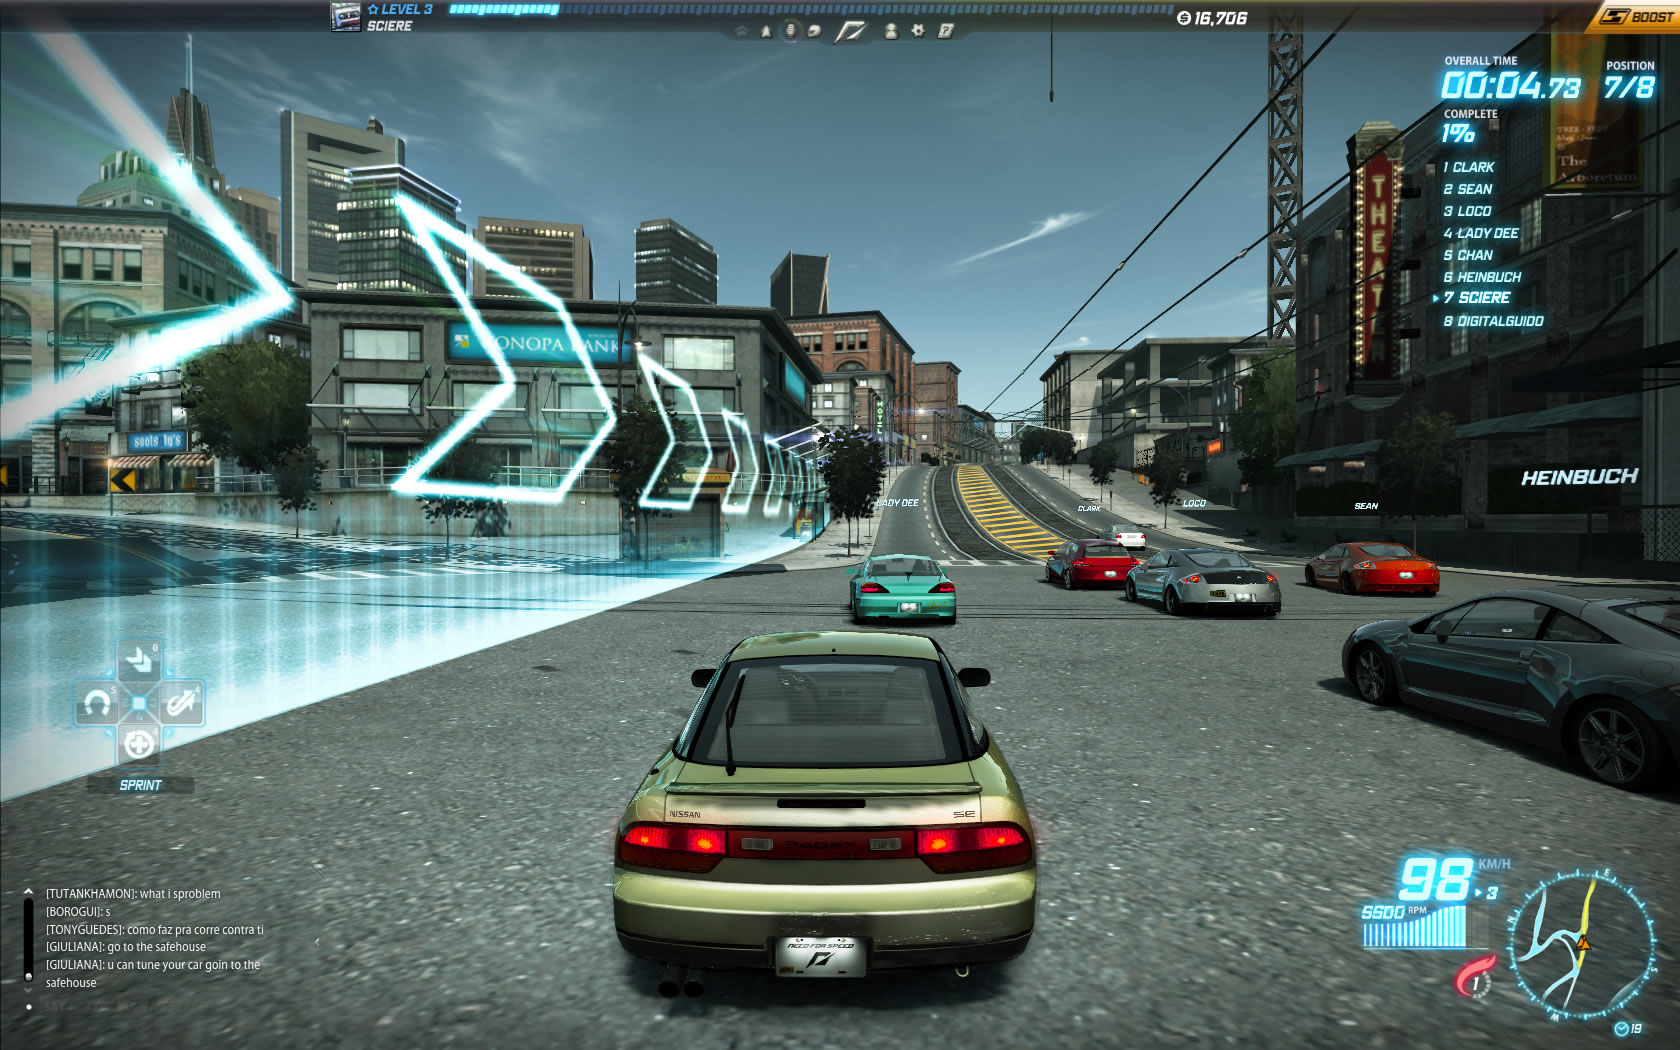 Need for Speed: World Windows Start of a race